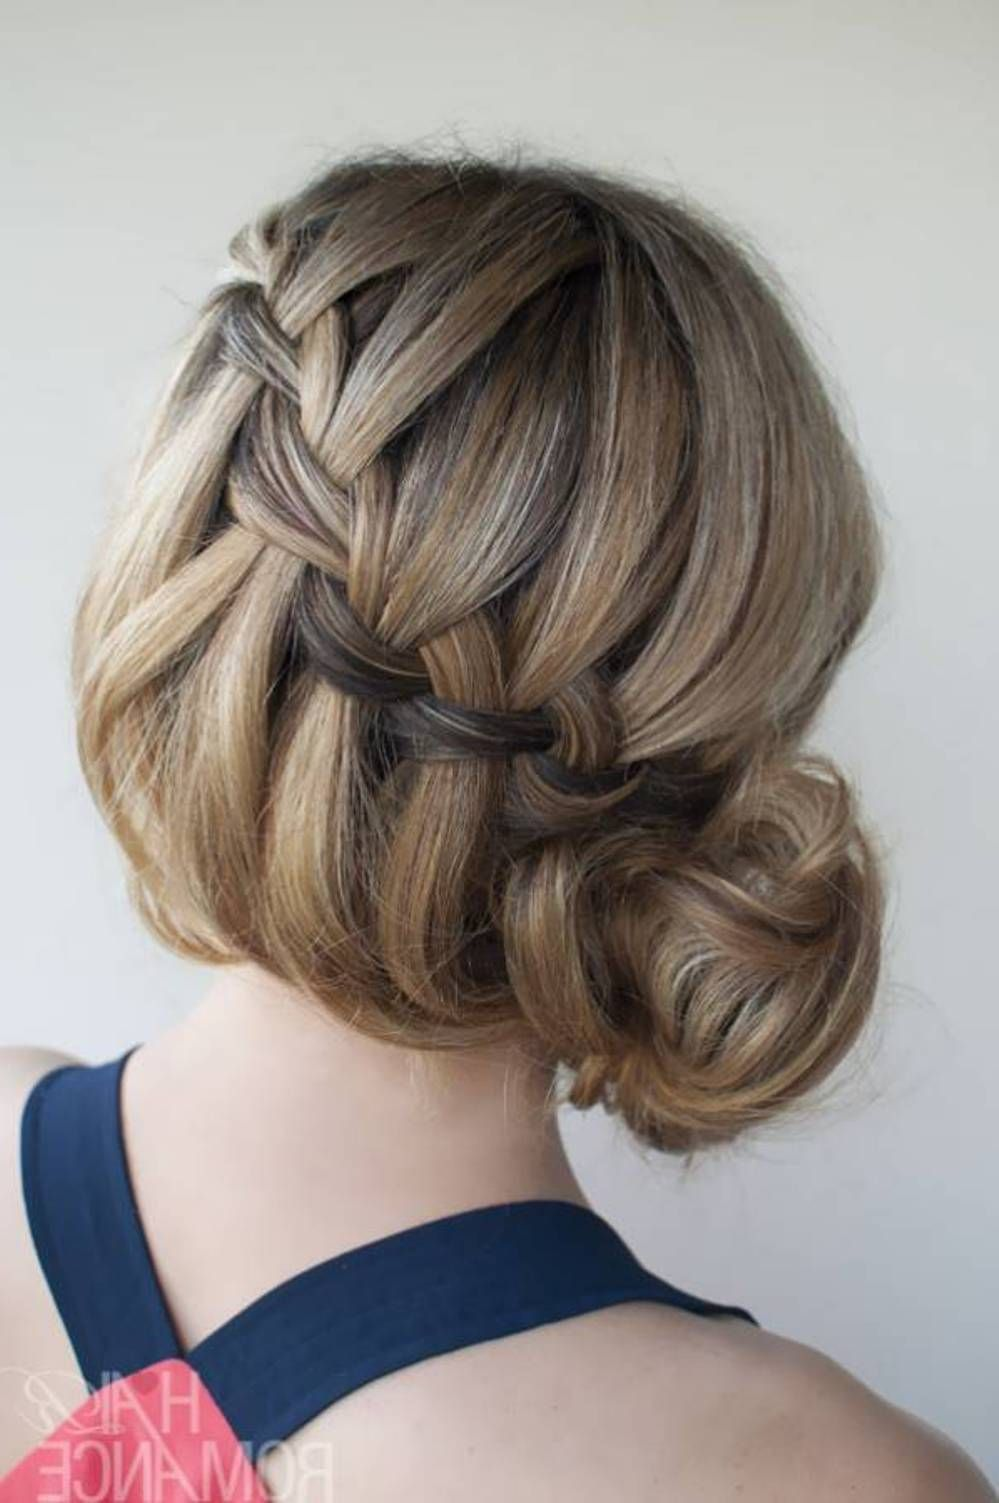 Waterfall braid bun cute hairdos with braids hair art pinterest